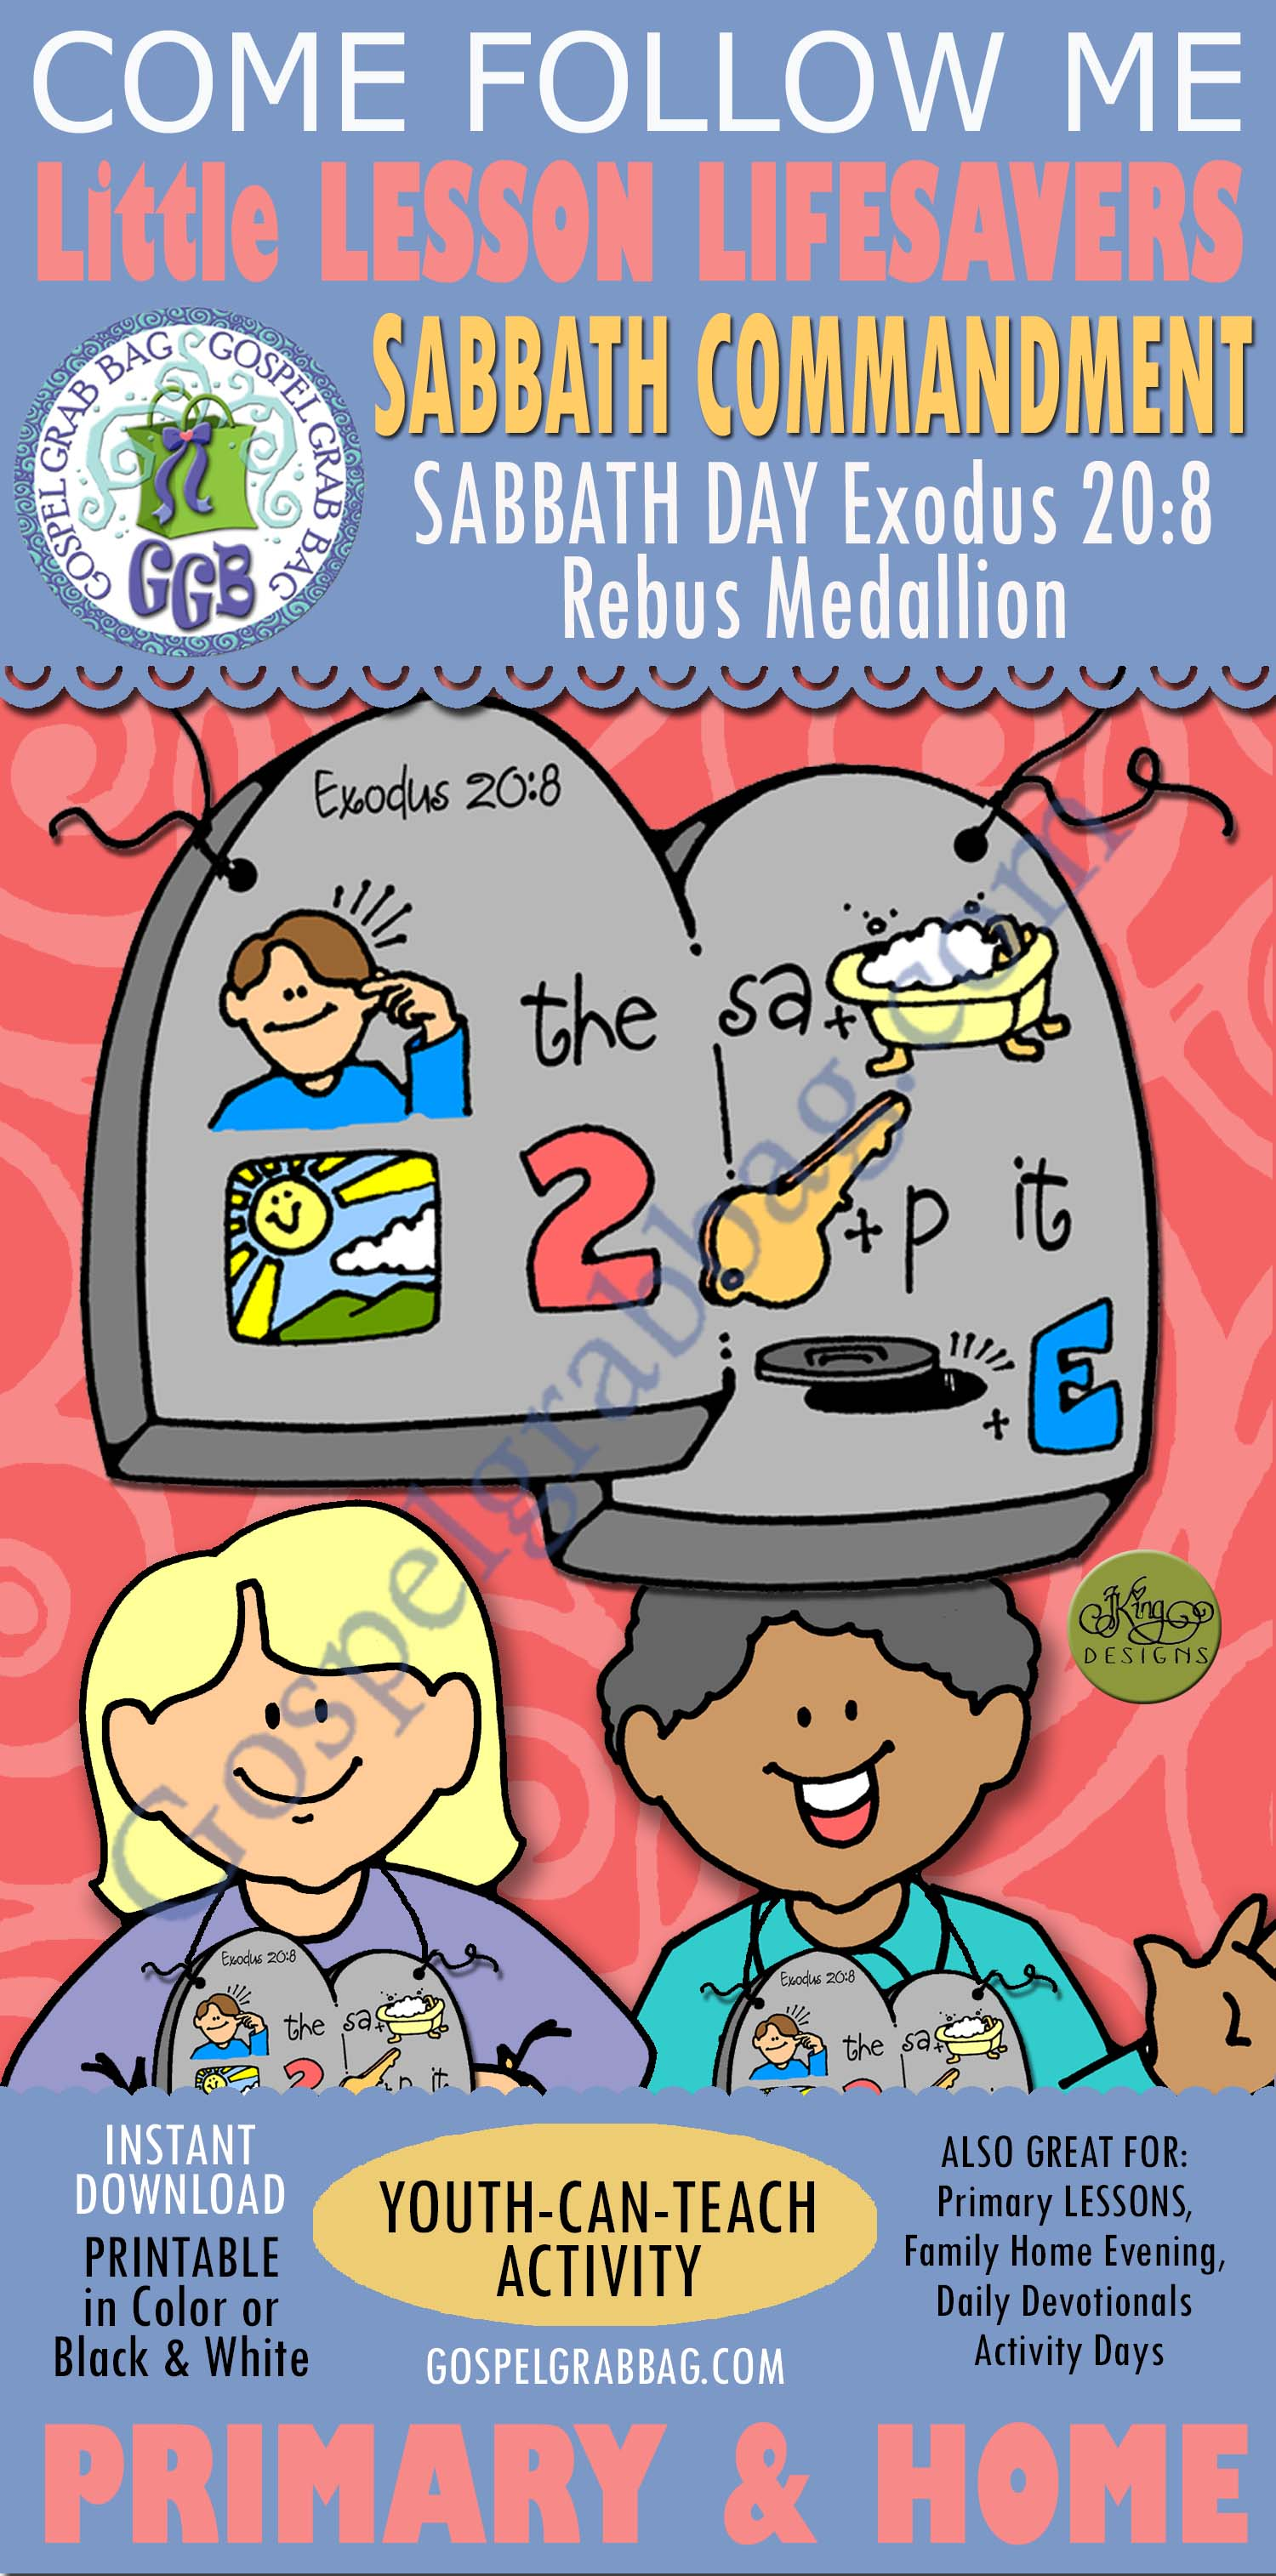 I Can Keep the Sabbath Day Holy, Primary Lesson Helps, Primary 2 CTR-A,  Lesson 37 - Gospel Grab Bag